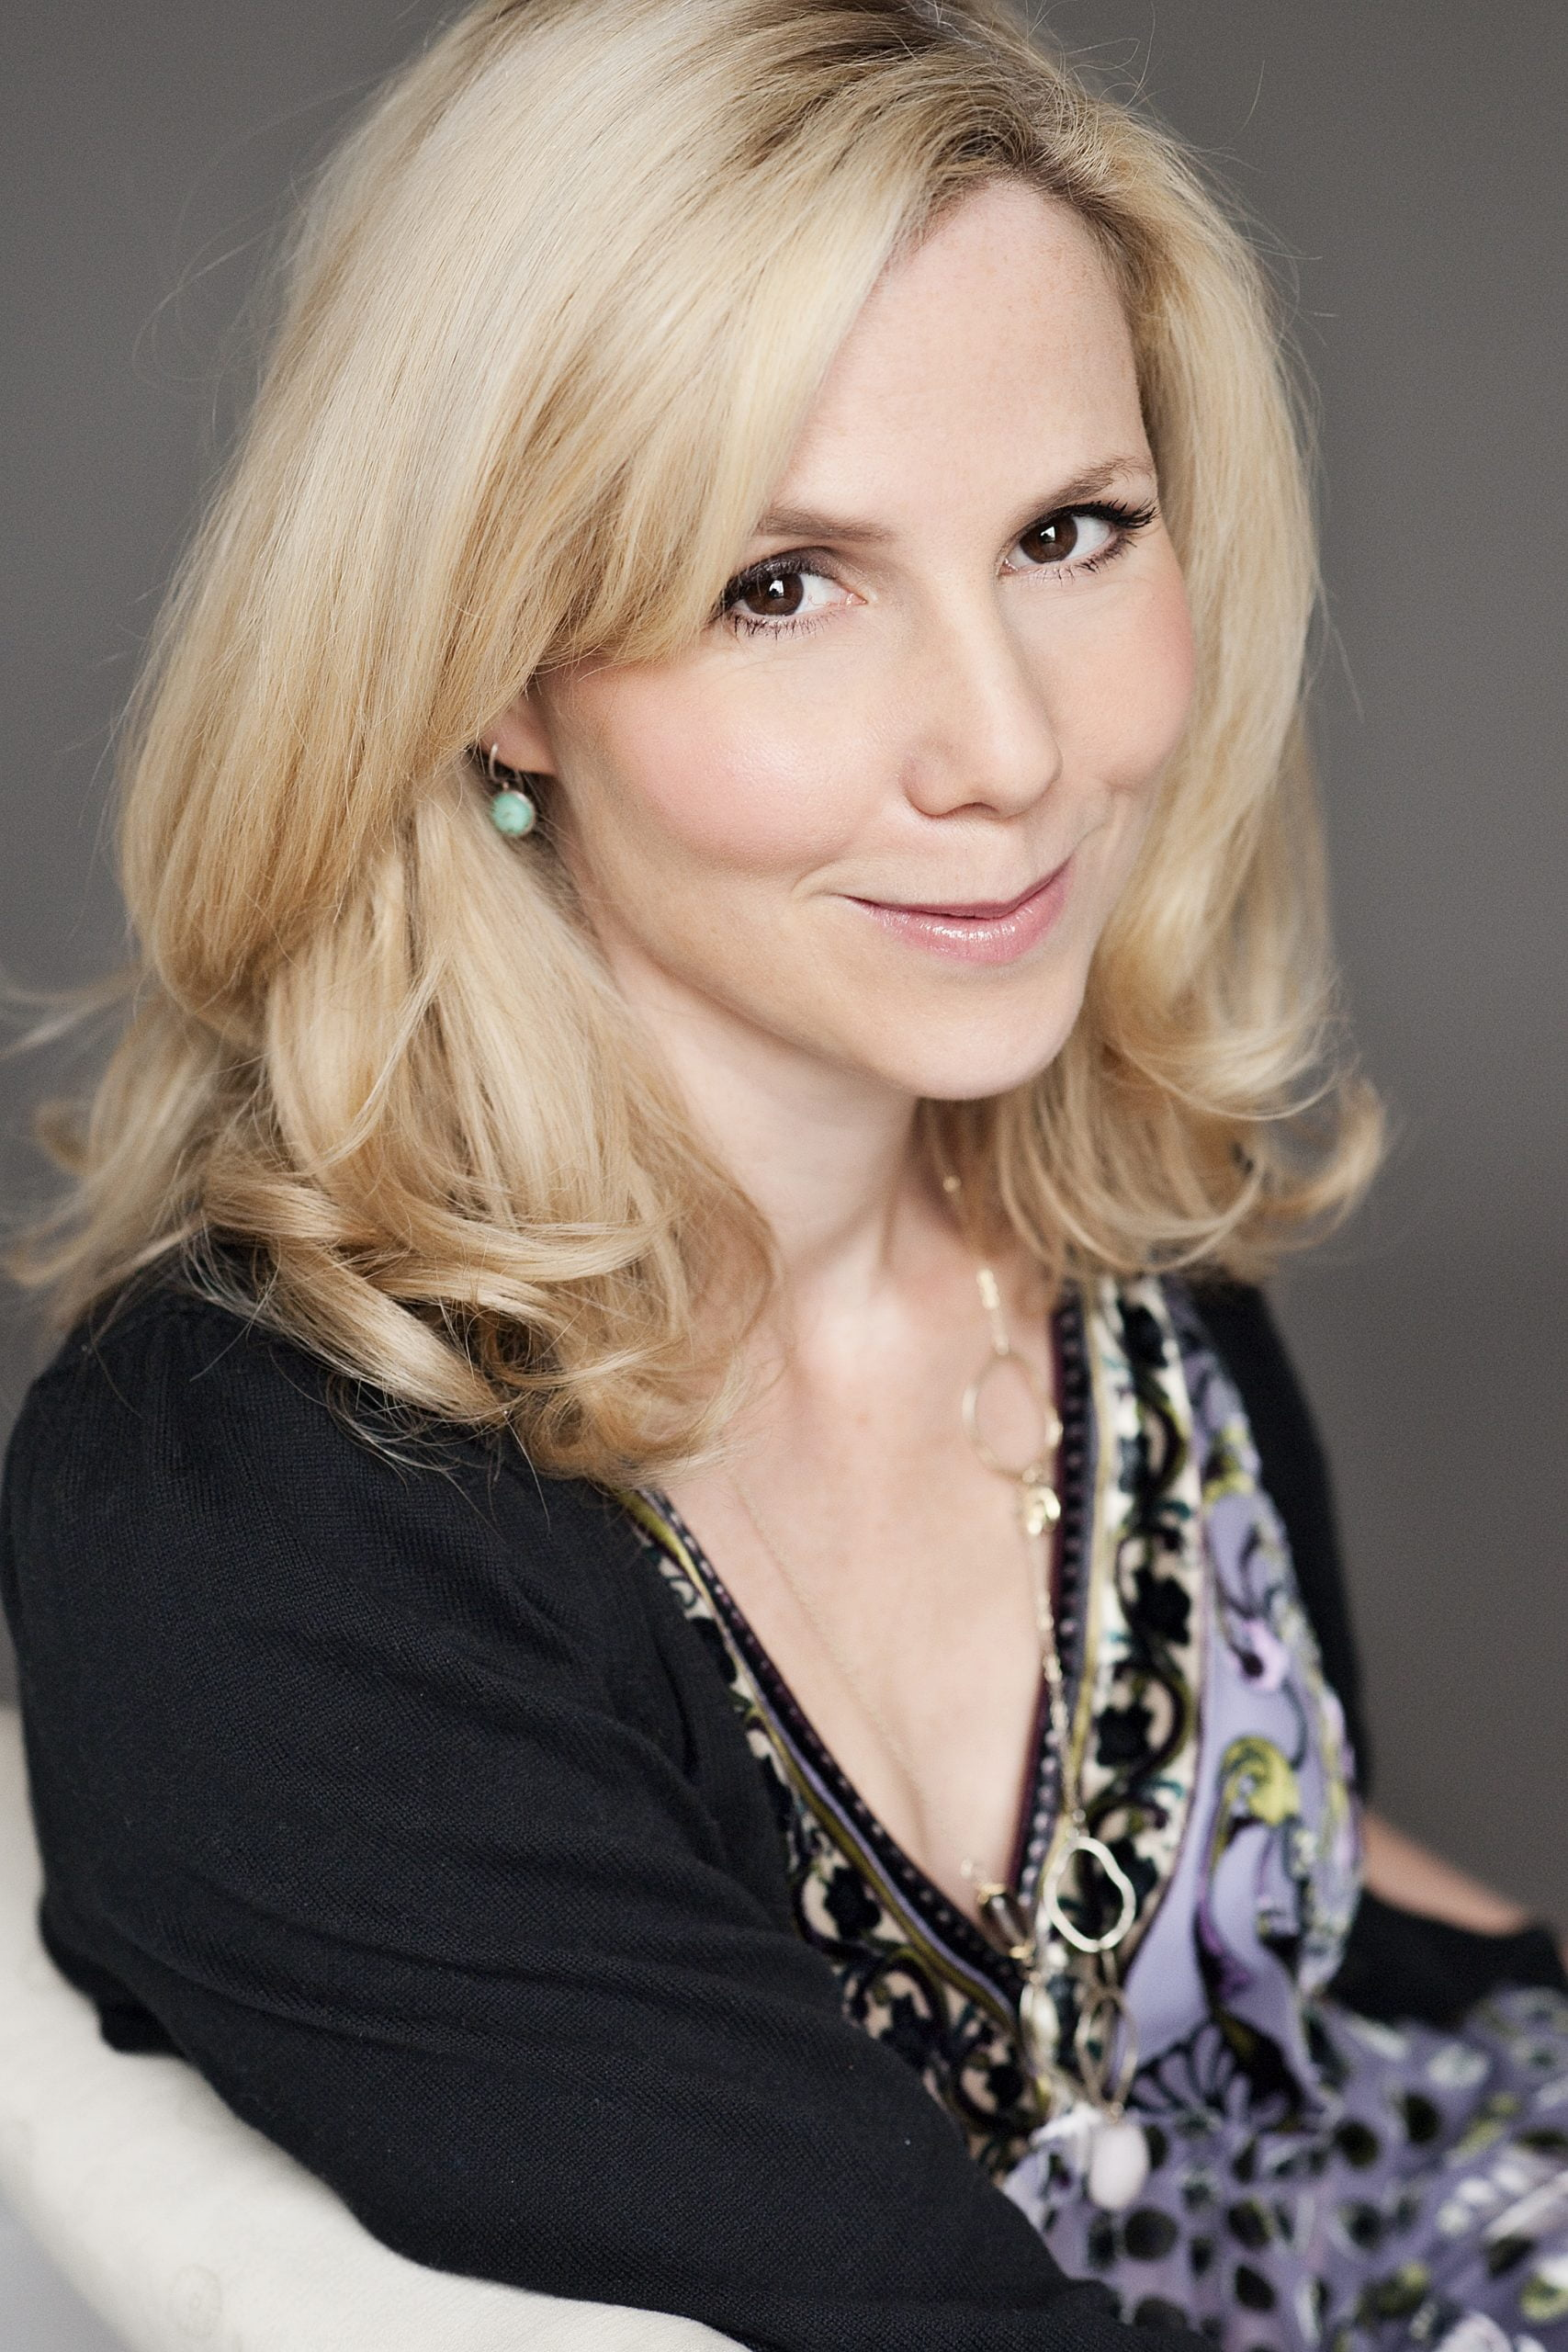 Sally_Phillips event host and comedy actress